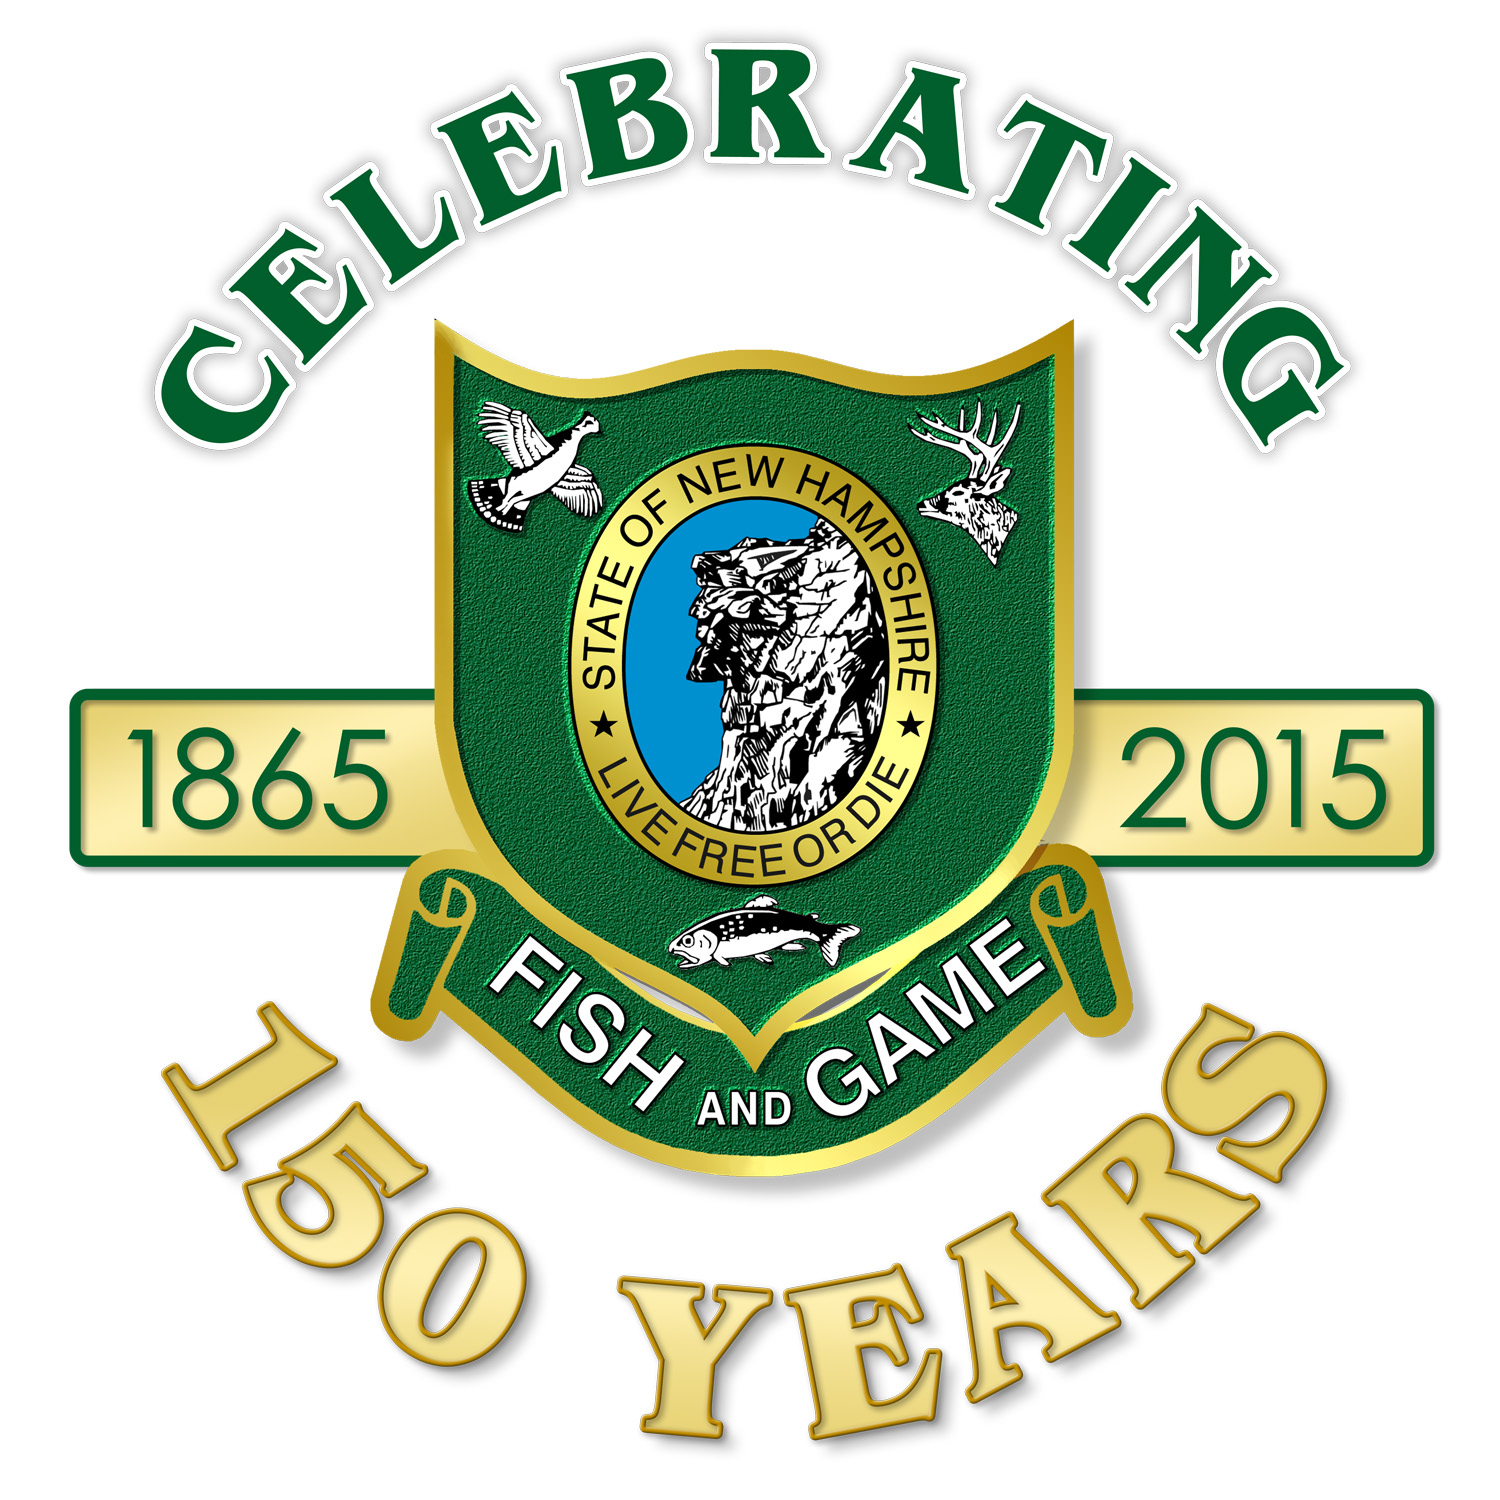 Celebrate 150 years new hampshire fish and game department for Nh fish game